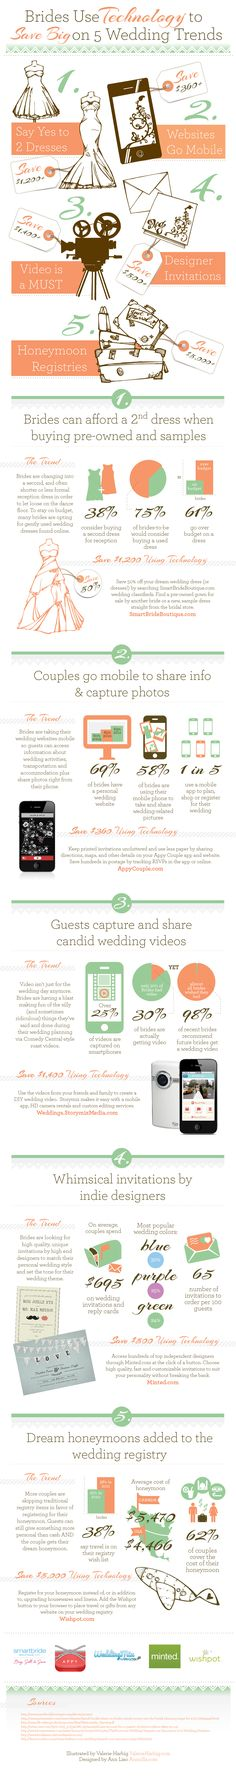 Here's a step-by-step guide including trends and stats from brides just like you.